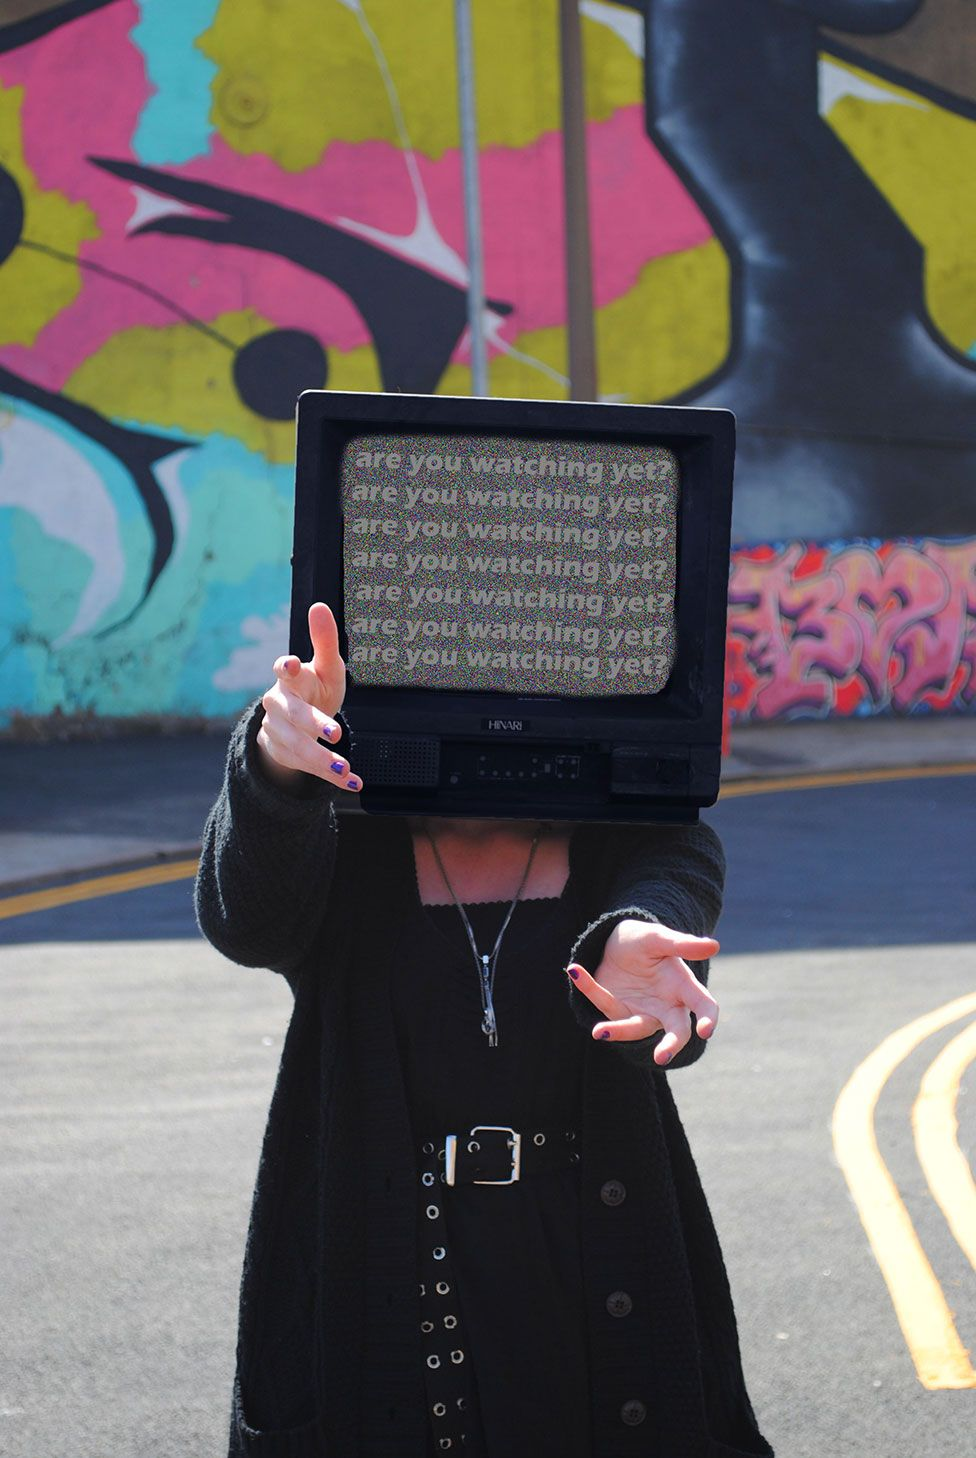 A piece of art showing a photo of a woman with a television set for a head